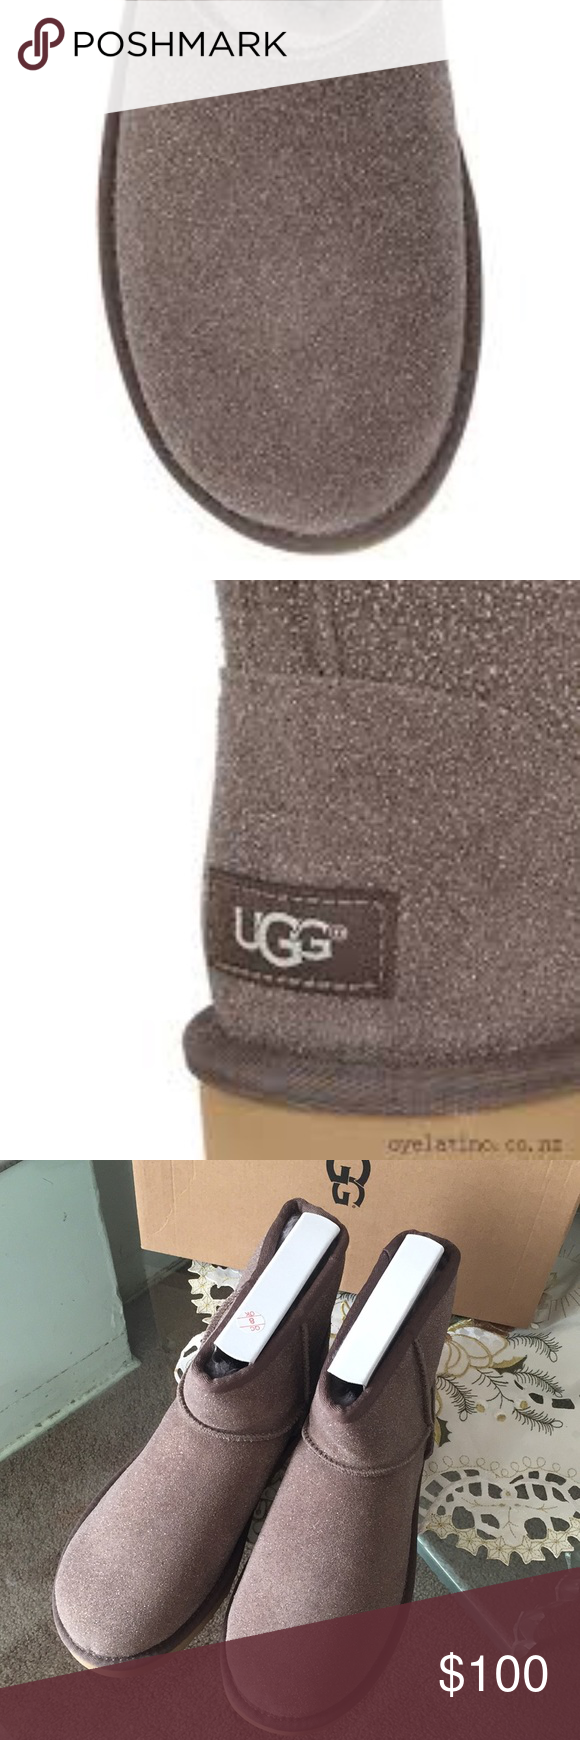 27ba2cf6018e8 Ankle Boots · Cozy · 🎁NEW UGG CLASSIC MINI SEREIN Now pretreated to  protect against moisture and staining